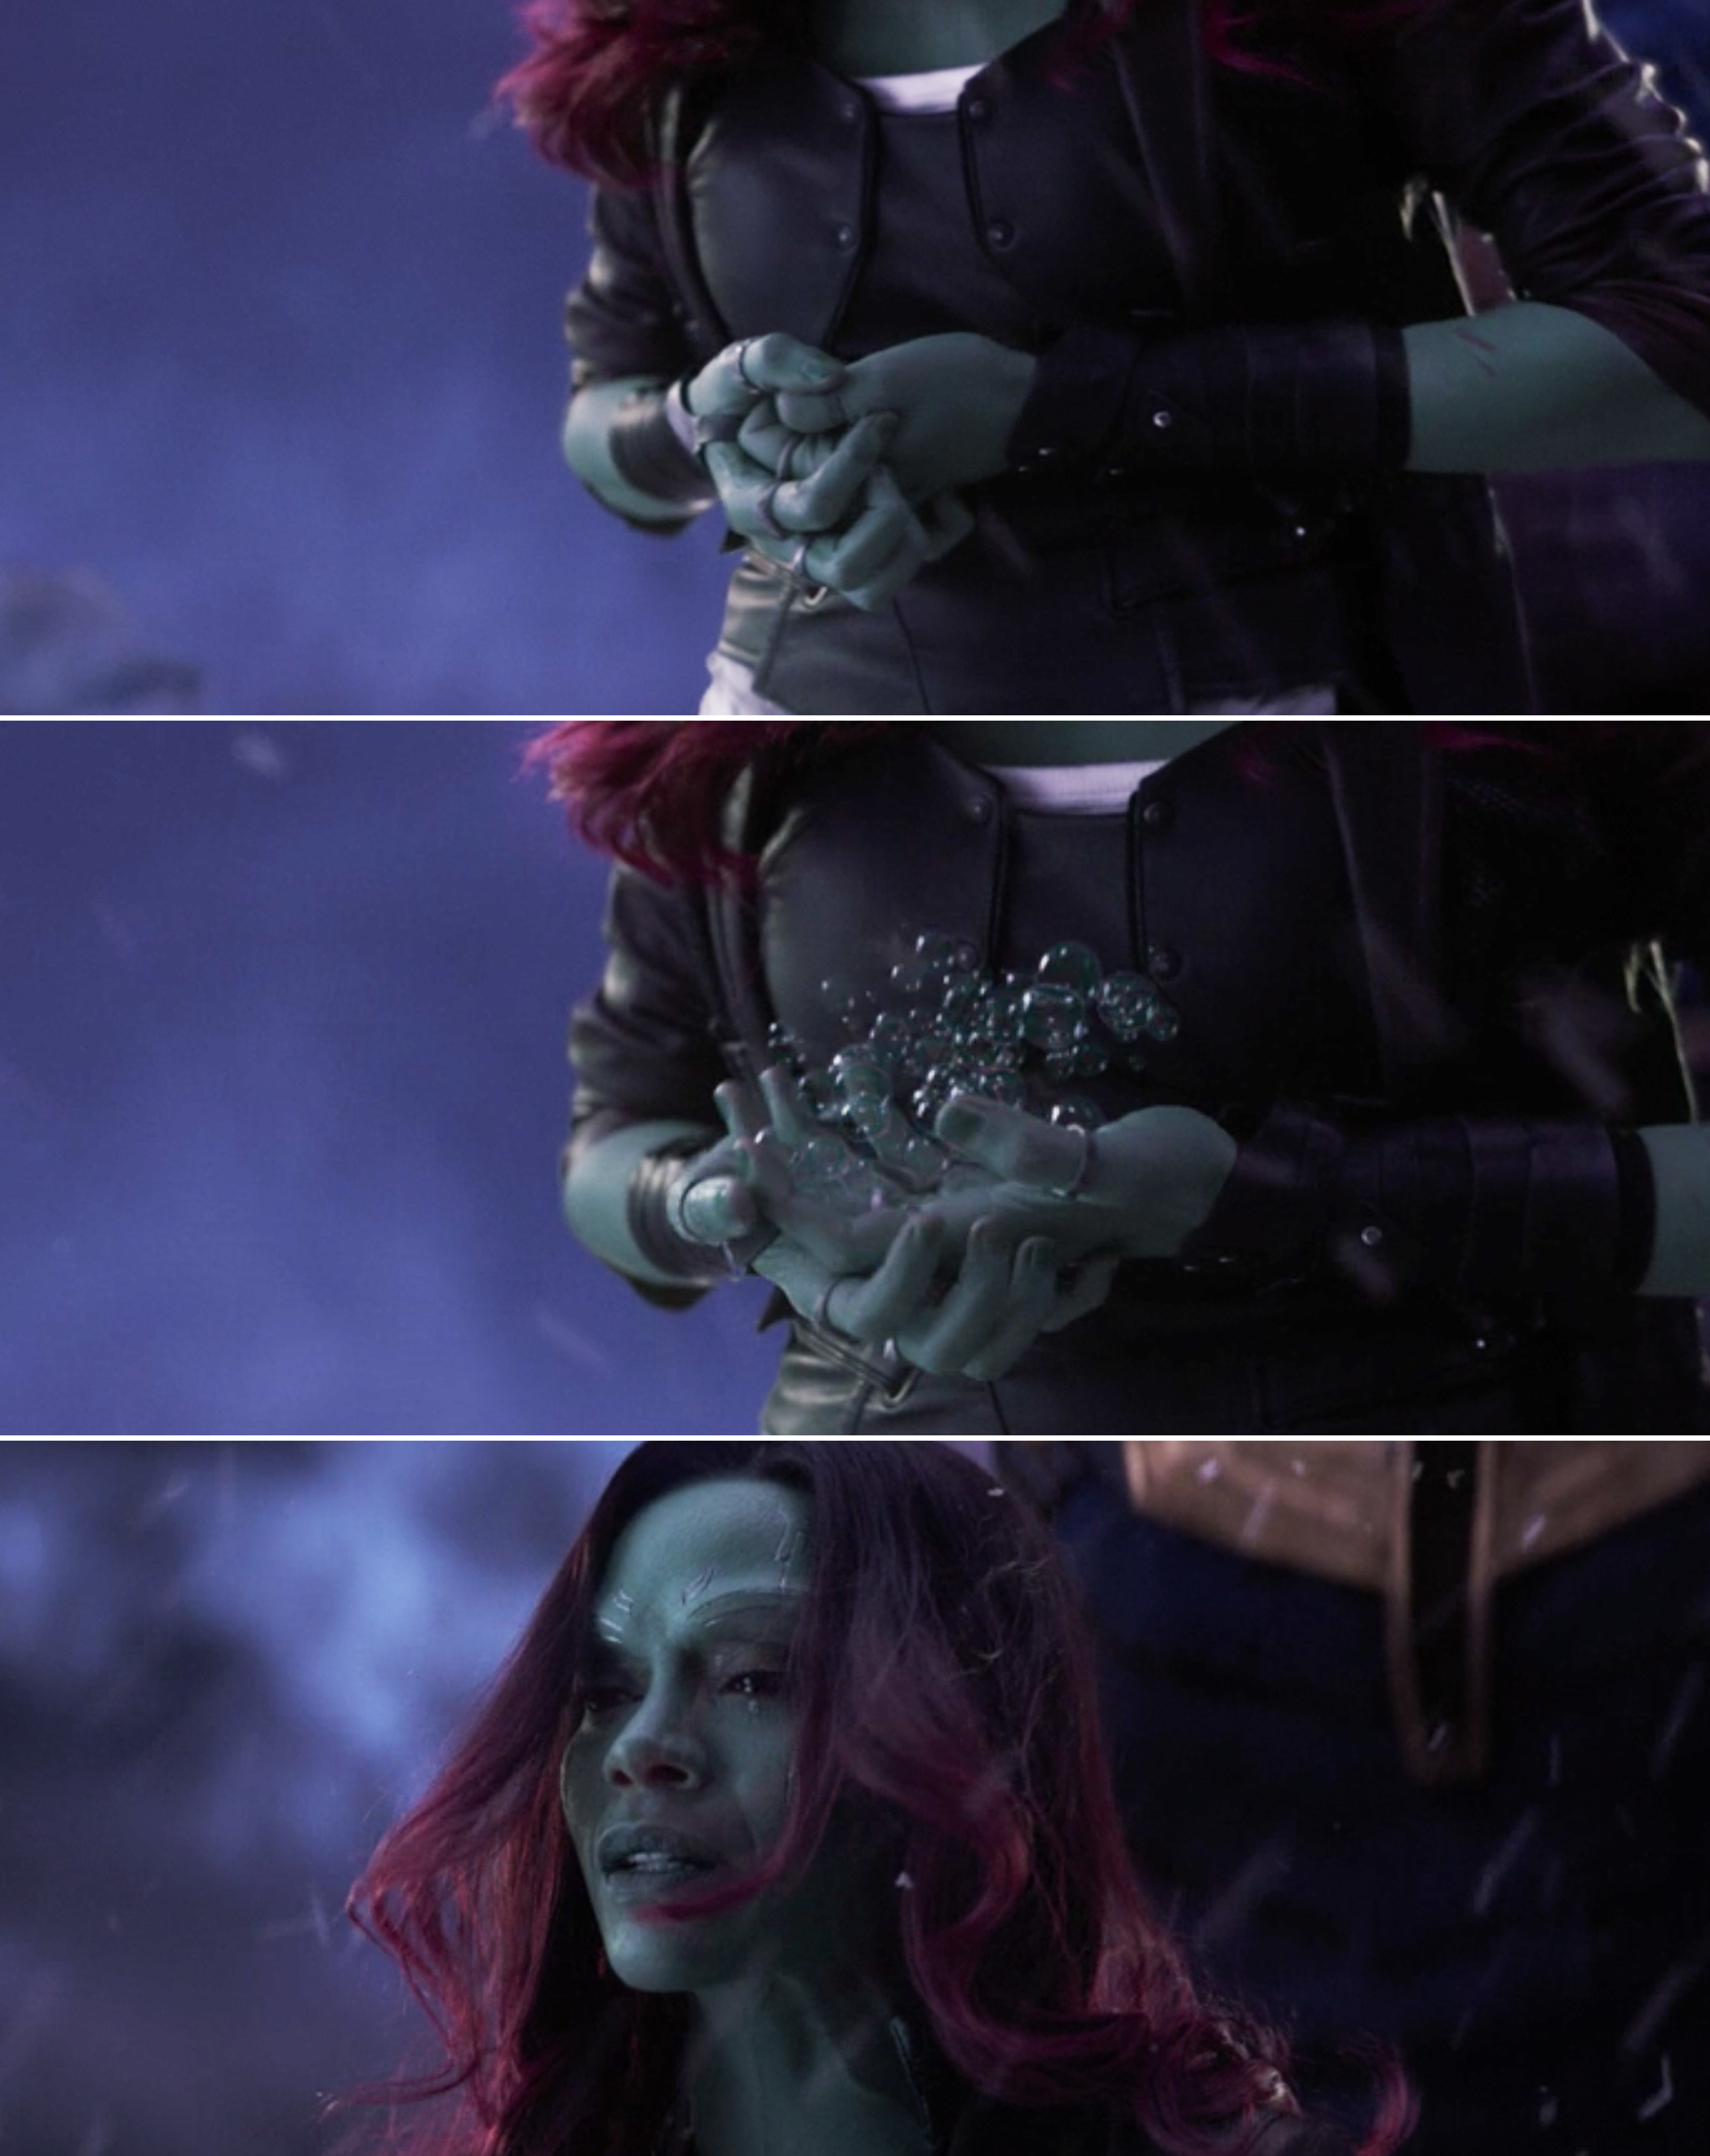 Gamora trying to stab herself and the knife turning into bubbles